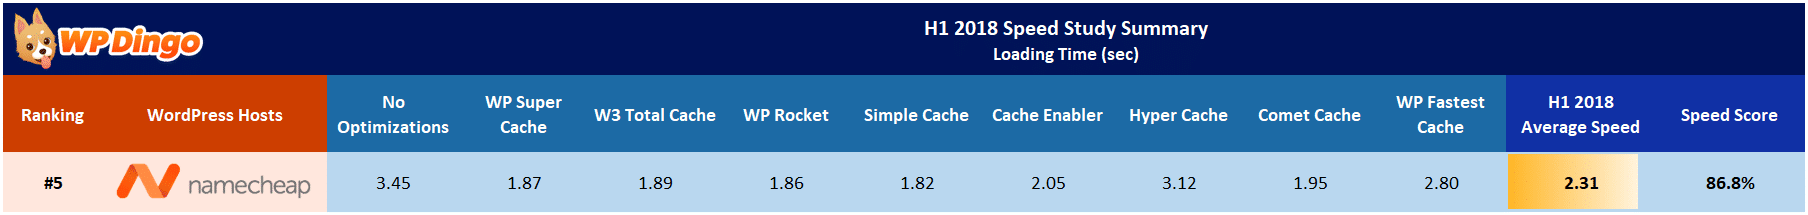 Namecheap Speed Test Results Table - Jan 2018 to Jul 2018